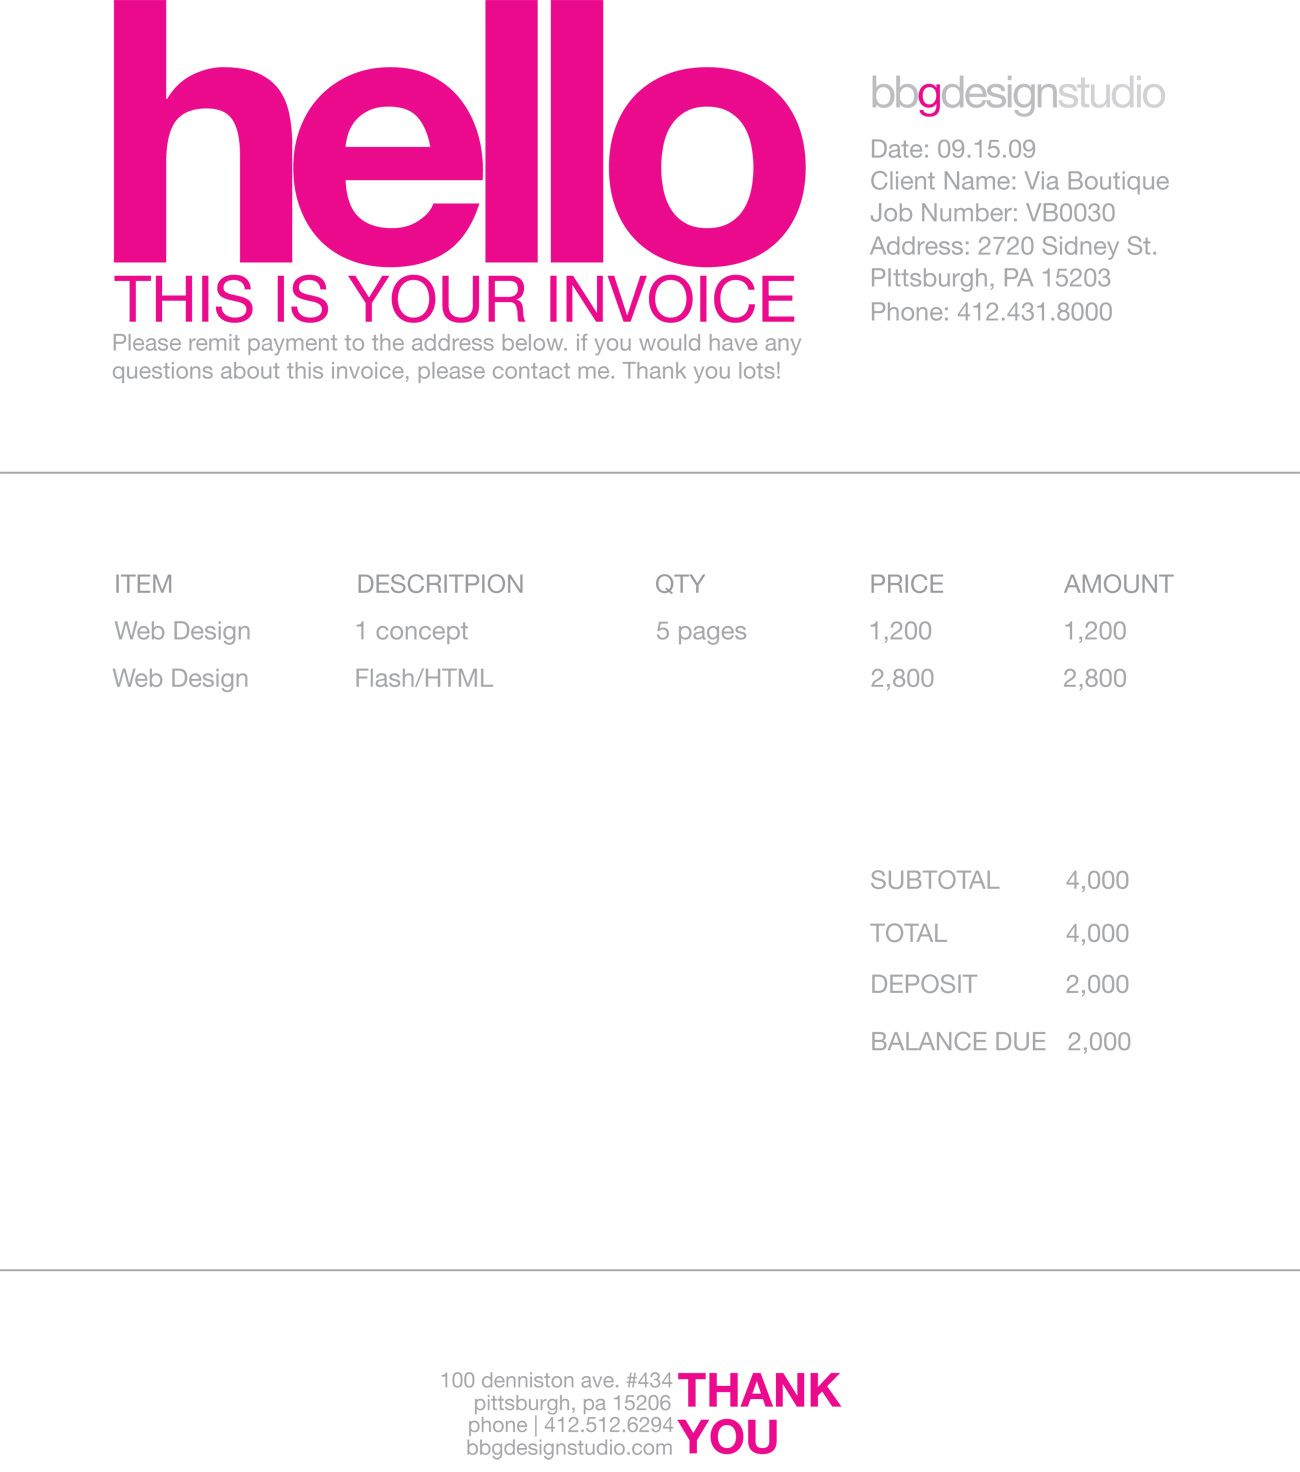 Coolmathgamesus  Inspiring  Images About Invoice Design On Pinterest With Luxury Blank Invoice Template Uk Besides Generic Invoice Template Pdf Furthermore Vat Invoice Requirements With Attractive Printer Invoice Also Gnucash Invoice Template In Addition Factoring Vs Invoice Discounting And Invoice Template Examples As Well As Pay By Invoice Meaning Additionally Go Invoice From Pinterestcom With Coolmathgamesus  Luxury  Images About Invoice Design On Pinterest With Attractive Blank Invoice Template Uk Besides Generic Invoice Template Pdf Furthermore Vat Invoice Requirements And Inspiring Printer Invoice Also Gnucash Invoice Template In Addition Factoring Vs Invoice Discounting From Pinterestcom